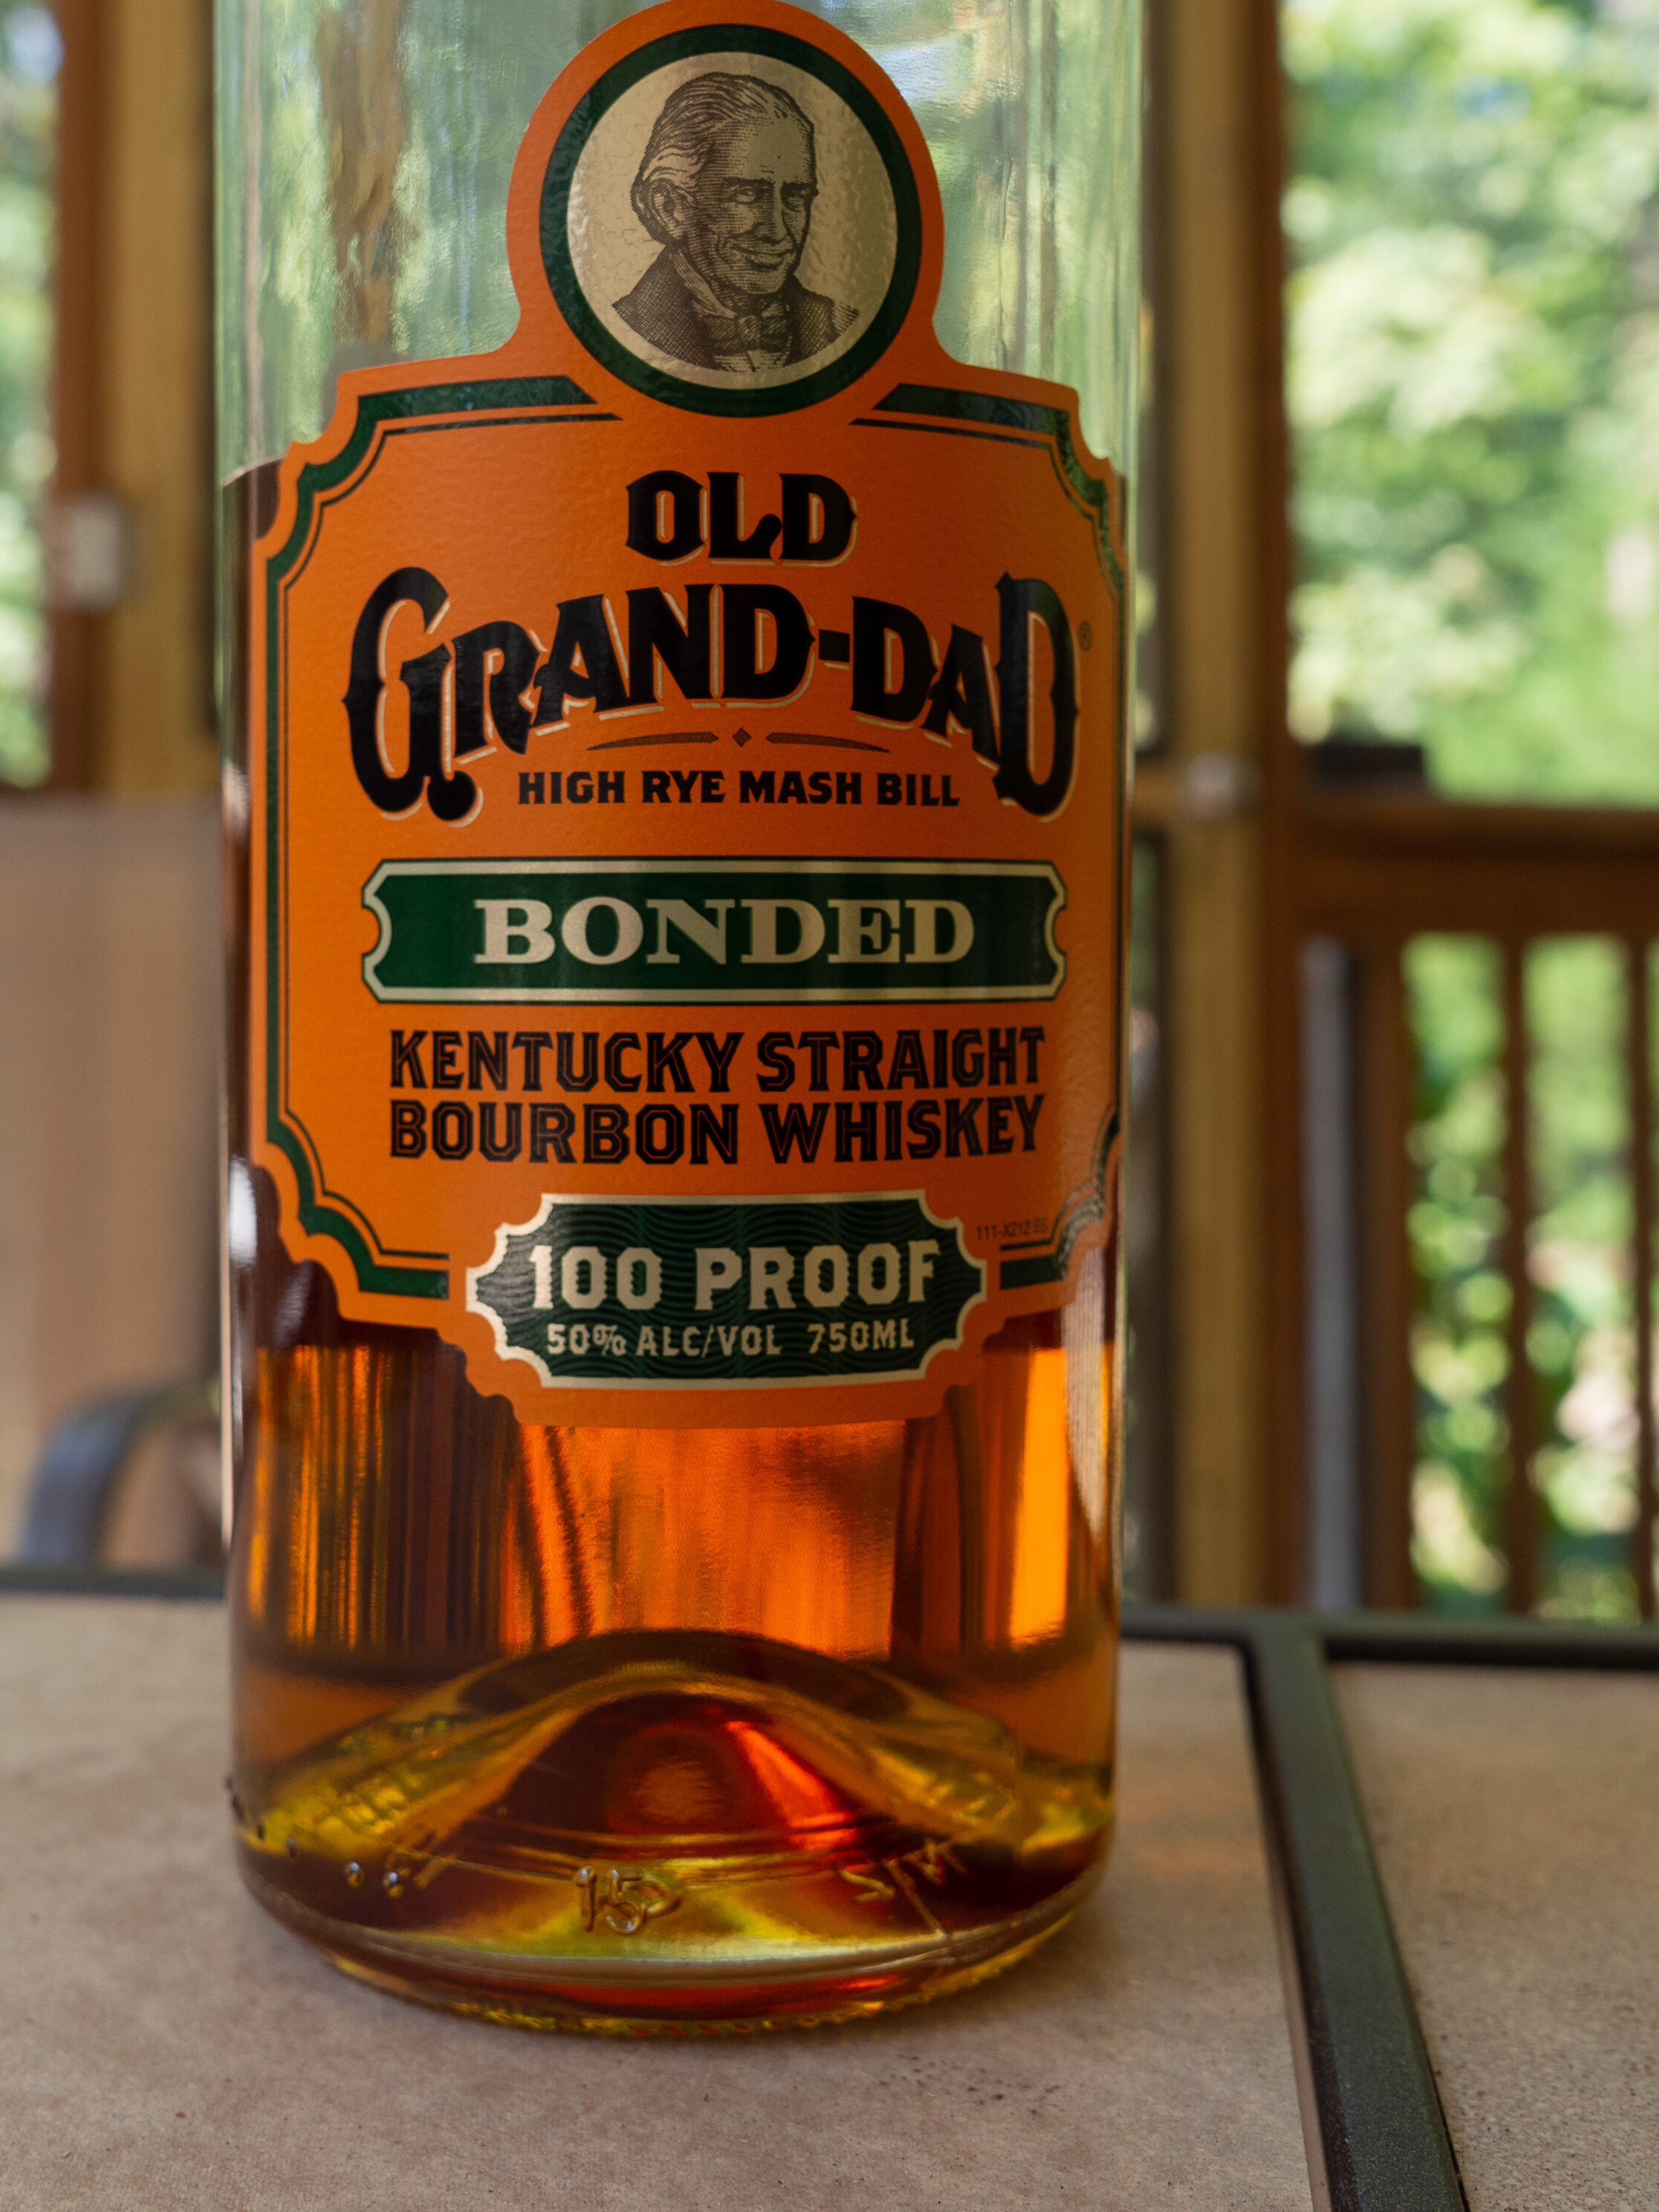 Old Grand-Dad Bonded